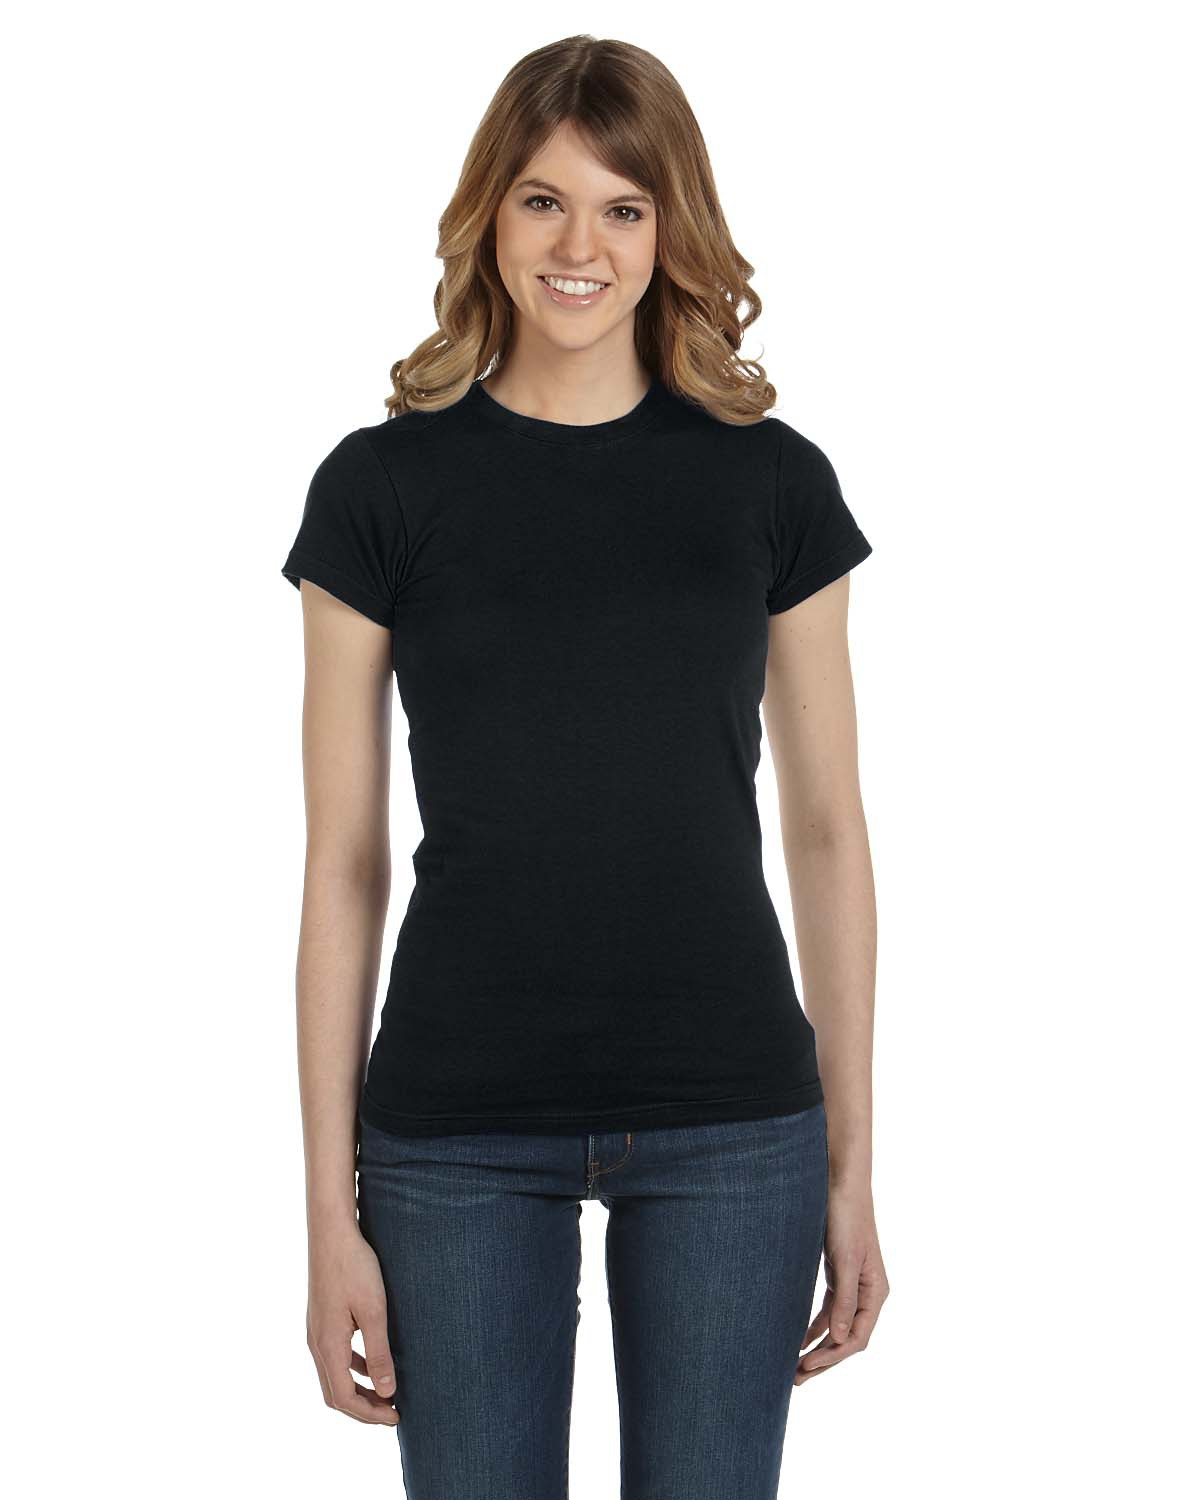 Anvil 379  Women's Ringspun Semi-Sheer T-Shirt